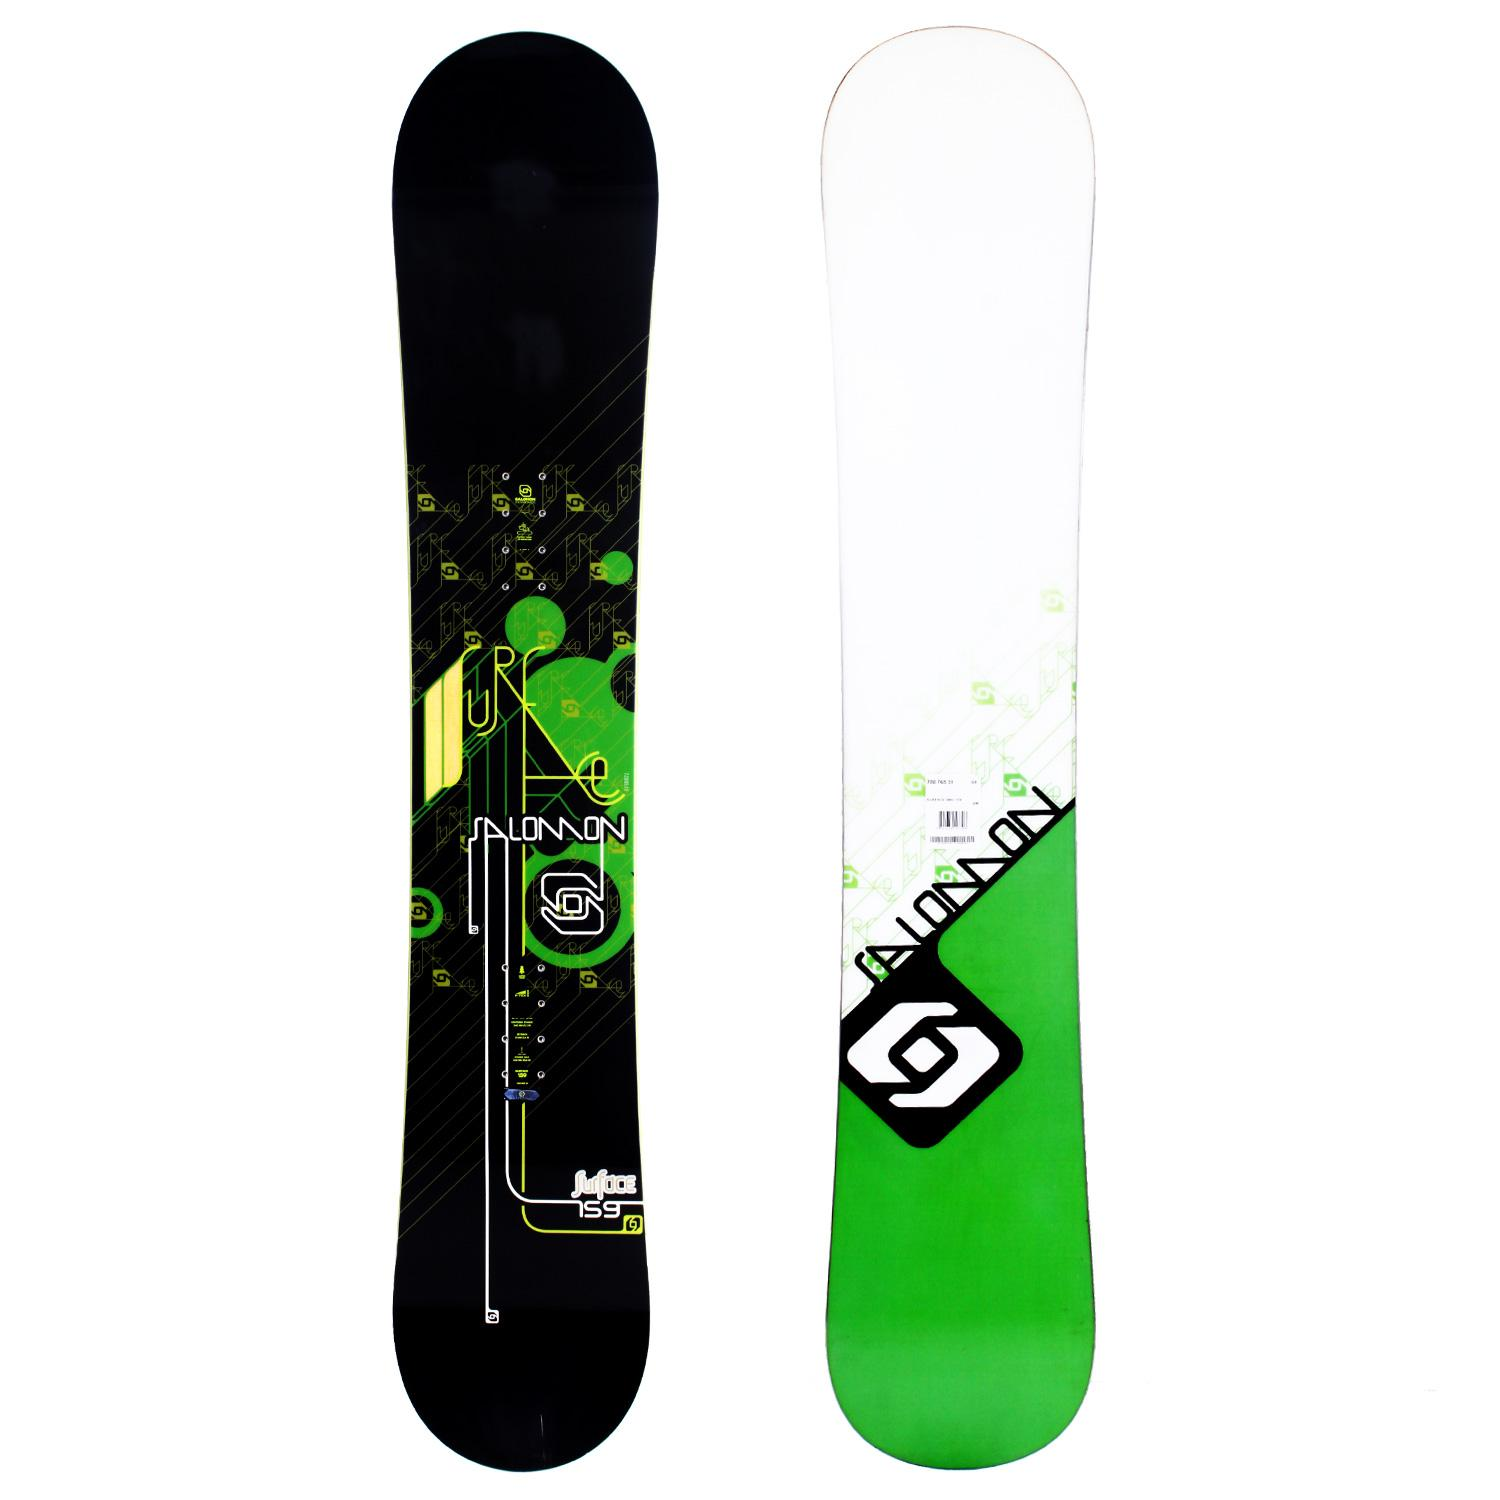 salomon-surface-snowboard-used-2008-152.jpg